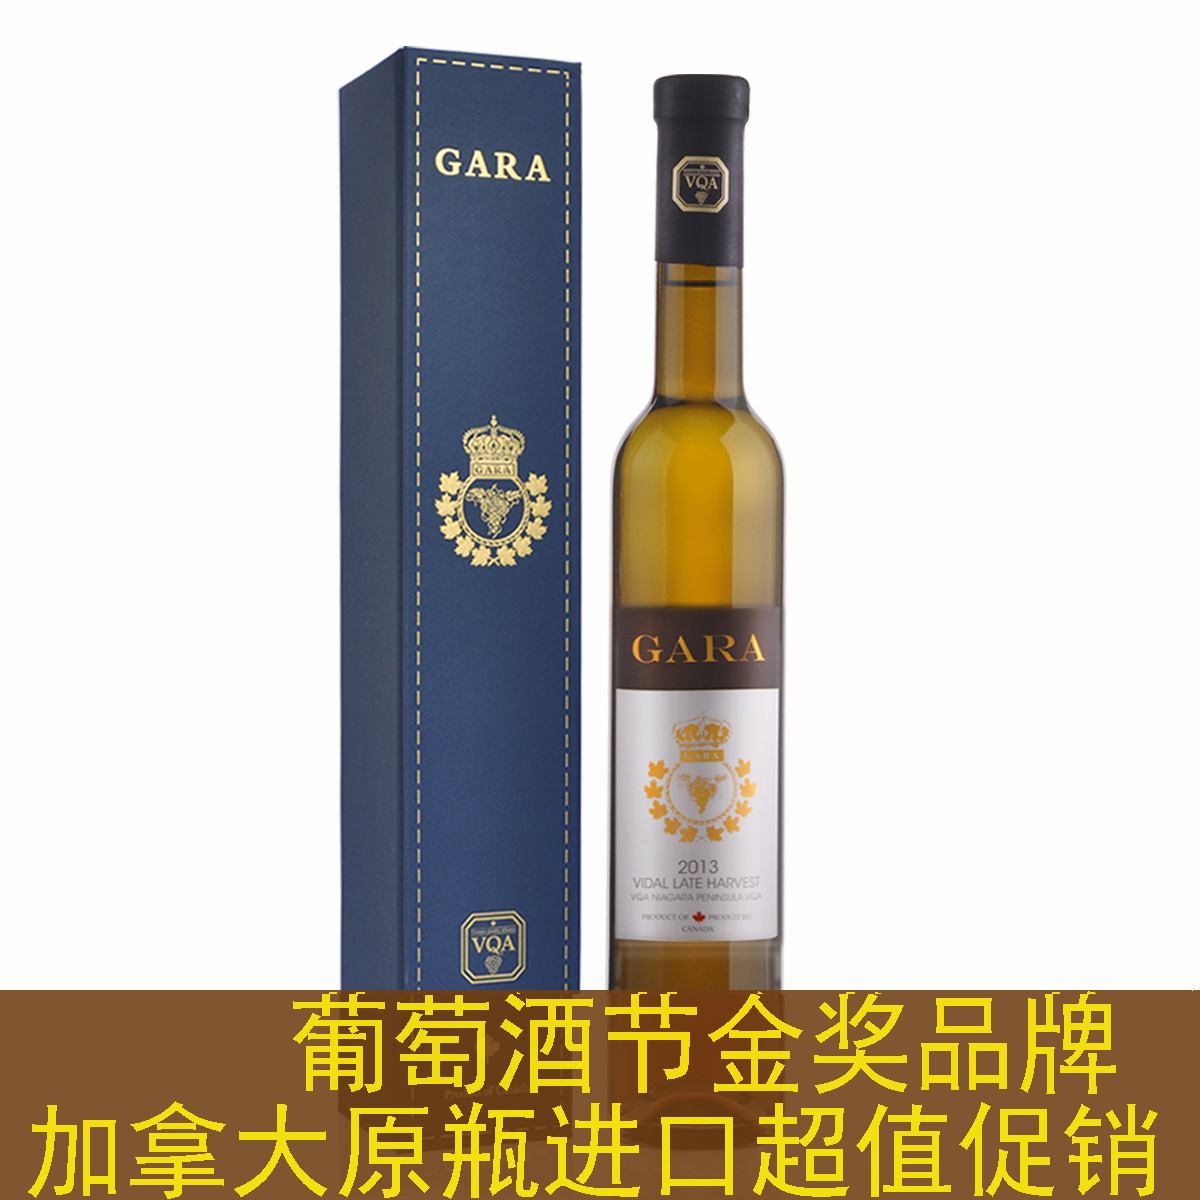 Canadian ice wine manor original bottle imported ice white wine, red wine sweet wine Gara / gala evening harvest VQA